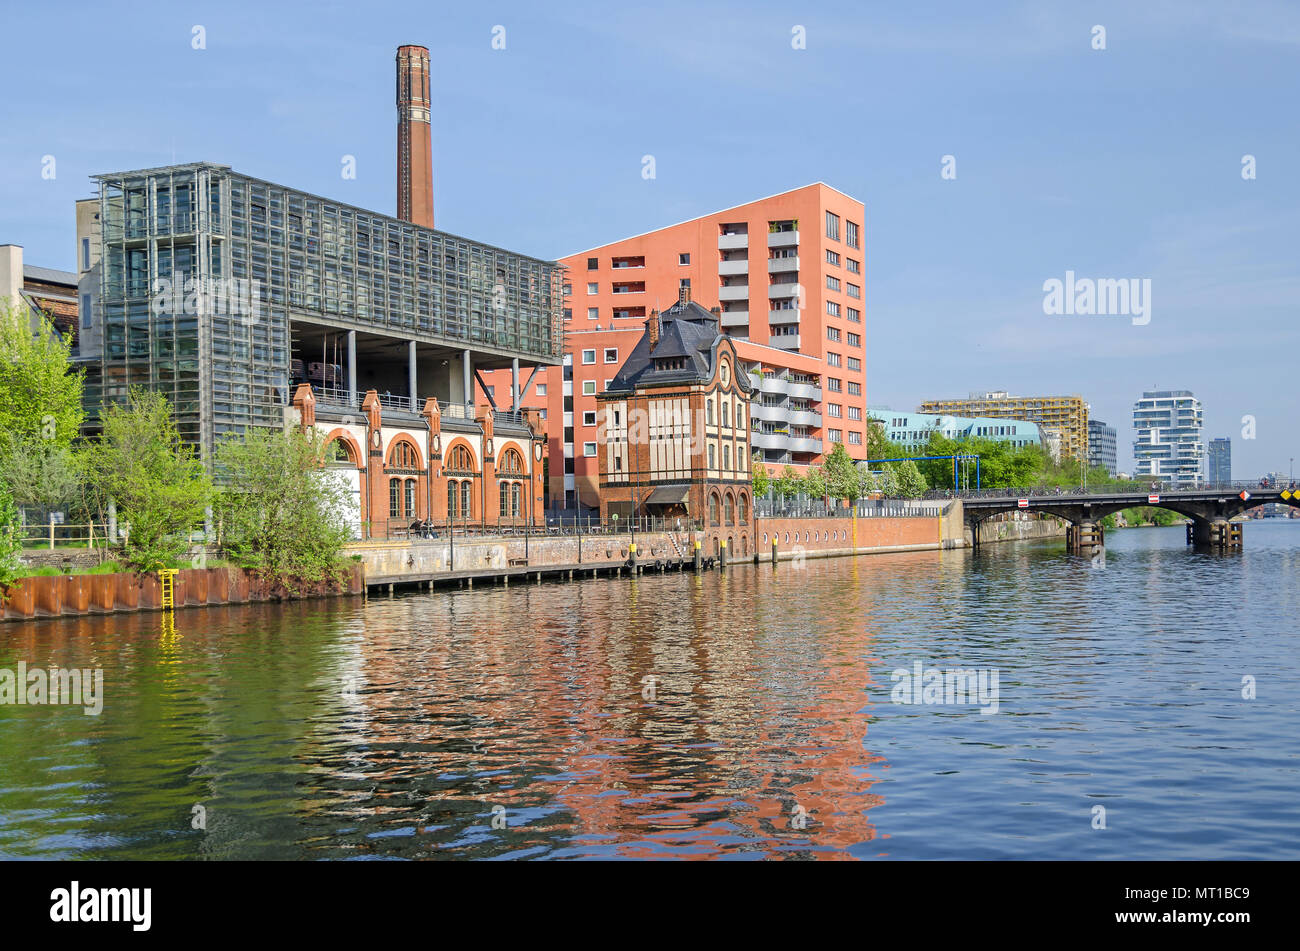 Berlin, Germany - April 22, 2018: Radialsystem V, a cultural and event center, with its red brick building of the machine hall of the pumping station - Stock Image